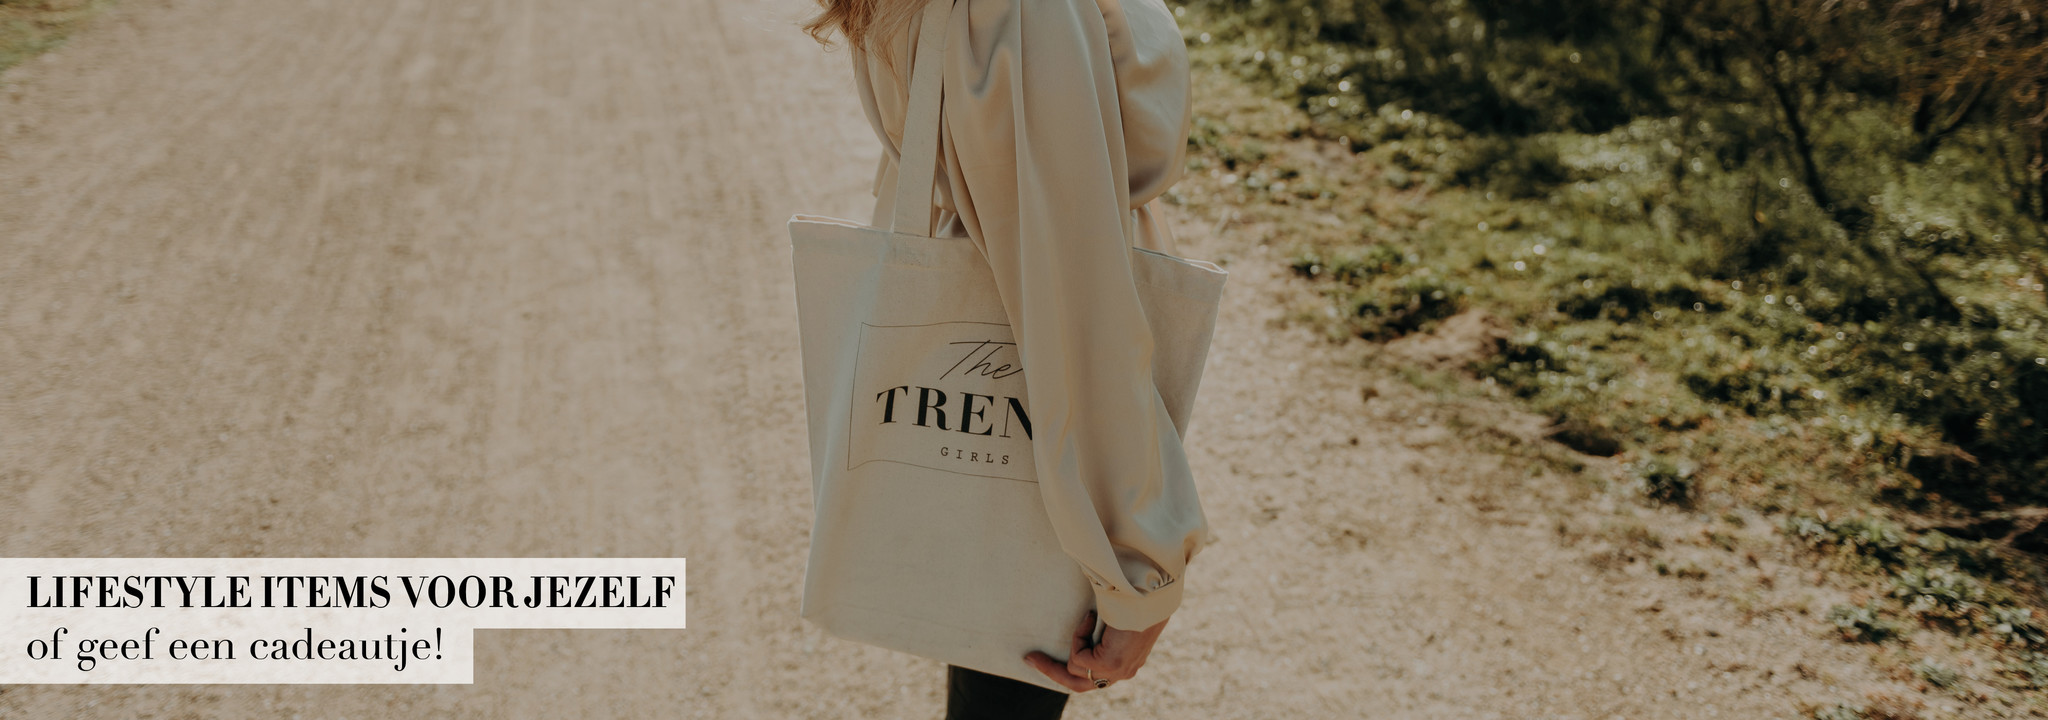 The Trend Girls - Lifestyle